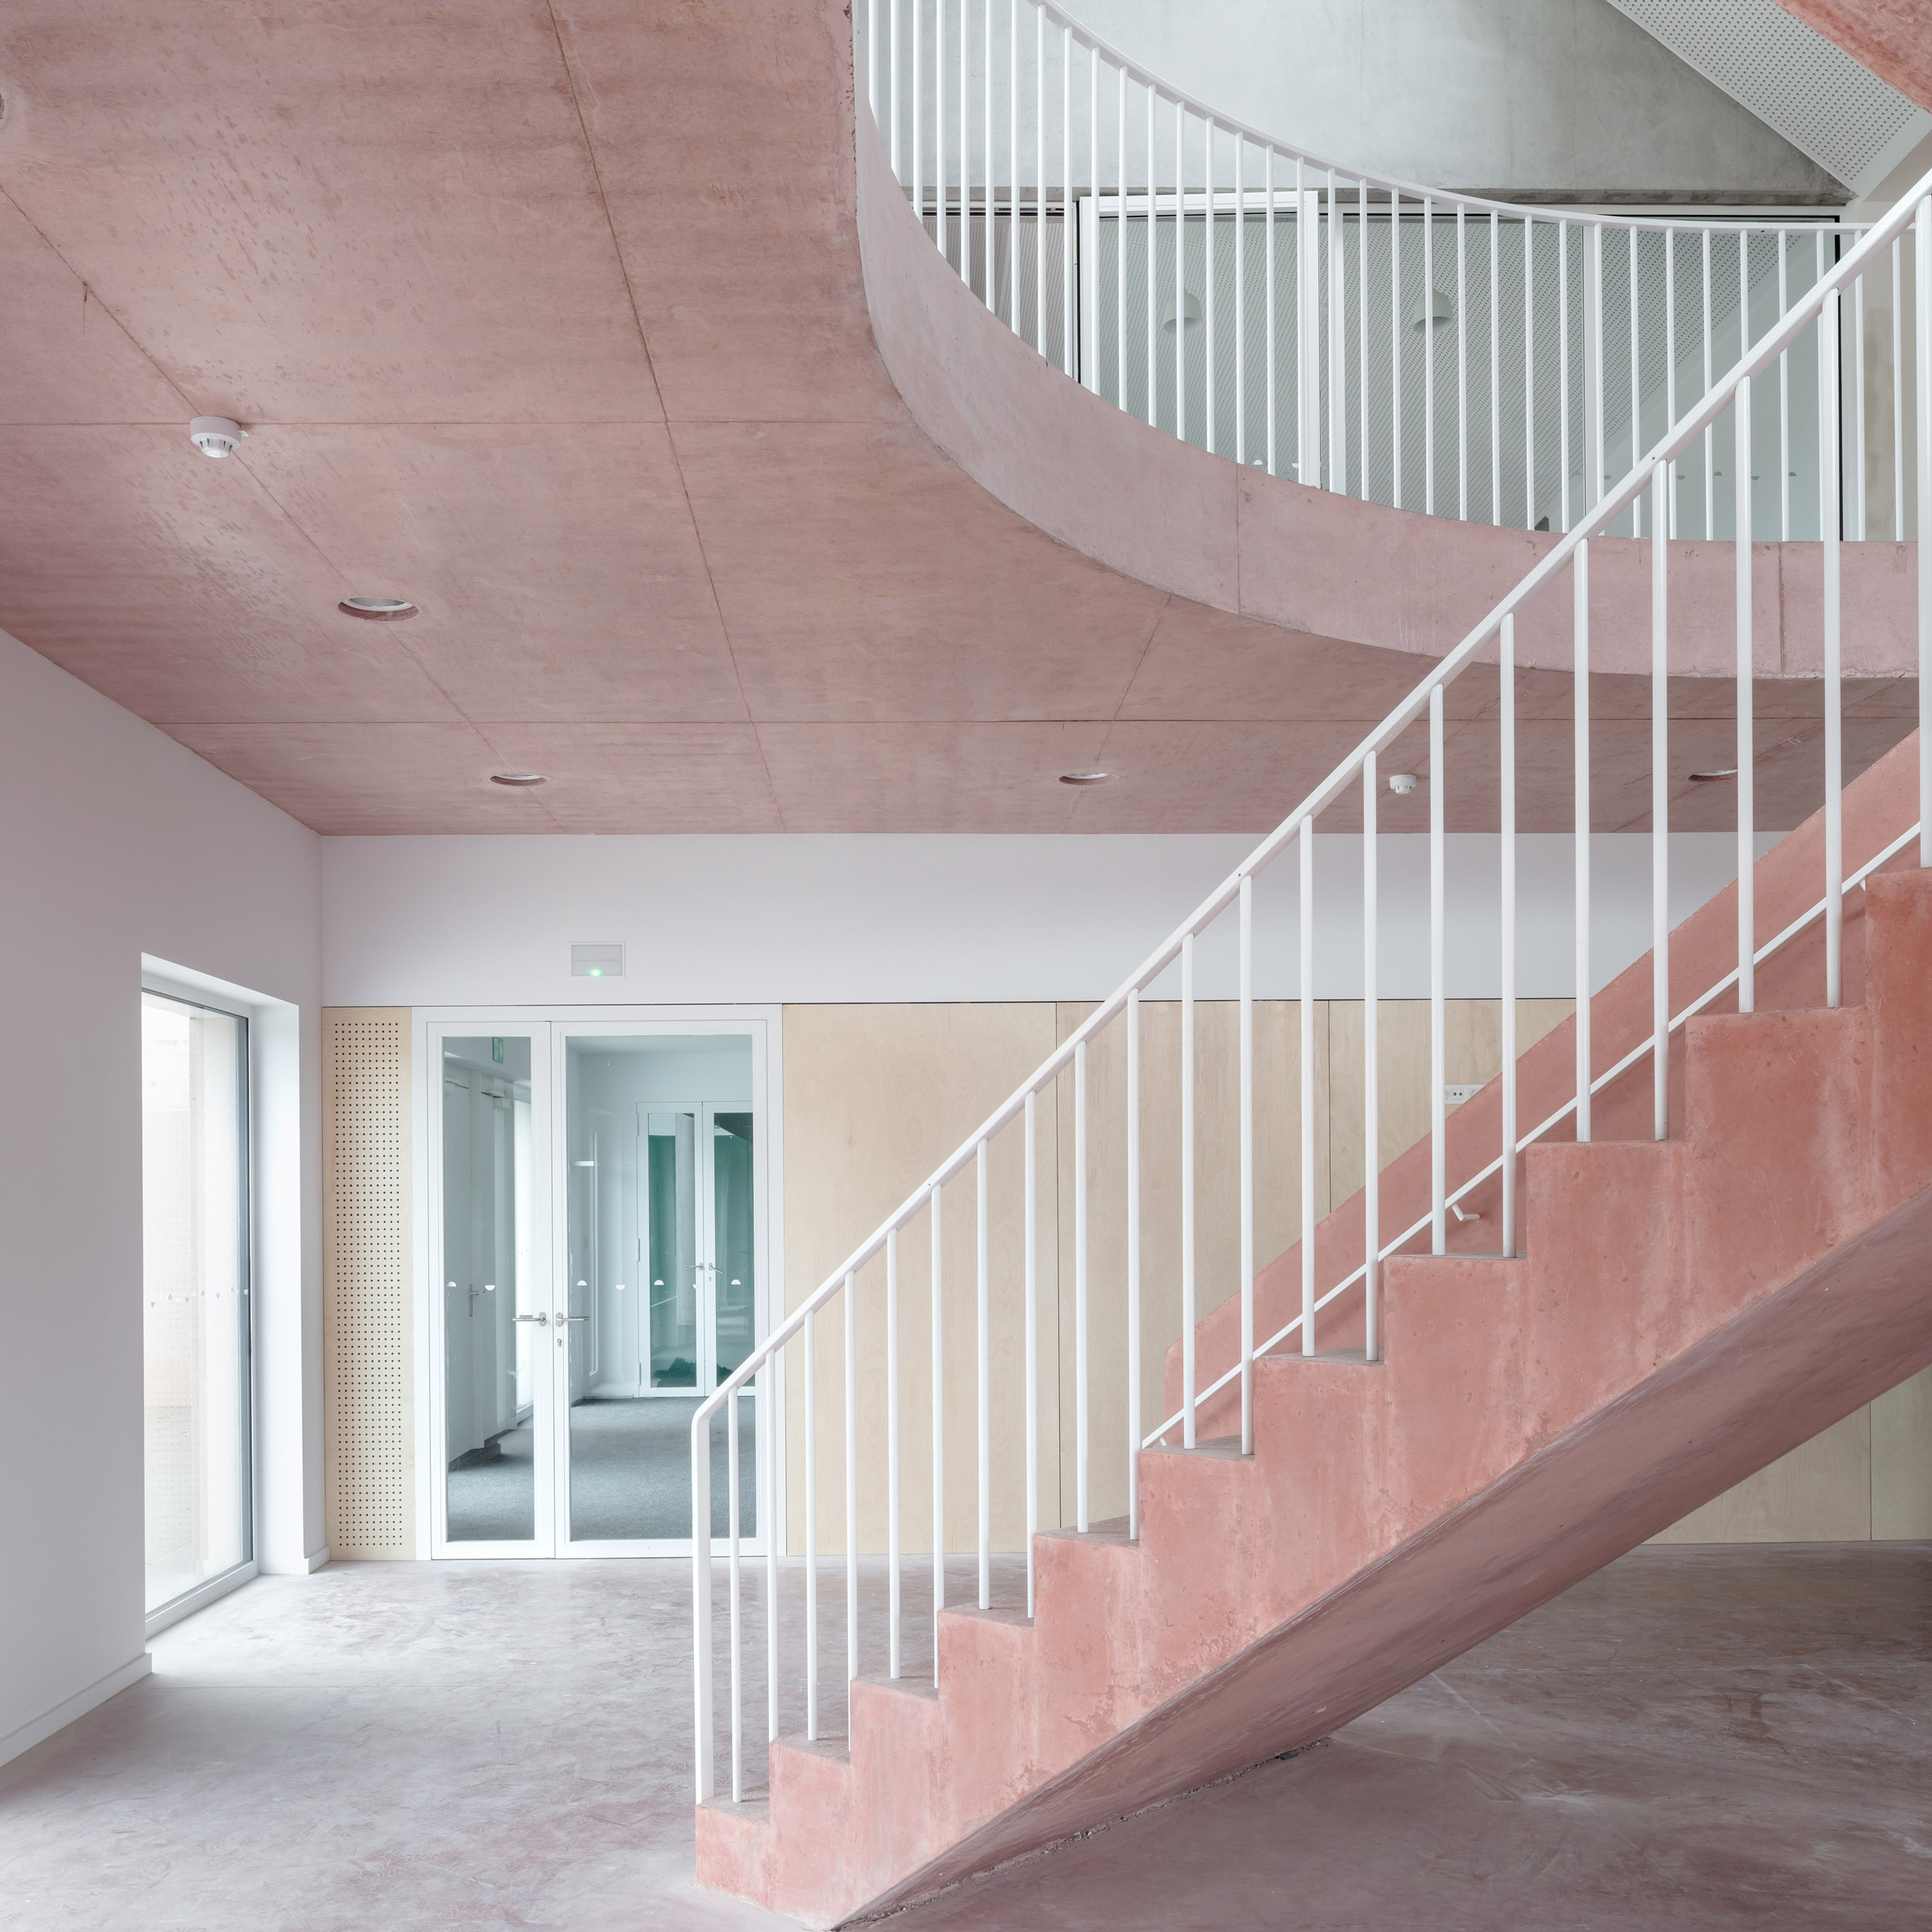 Dezeen's top 10 staircases of 2019: School Zarren, Belgium, by Felt